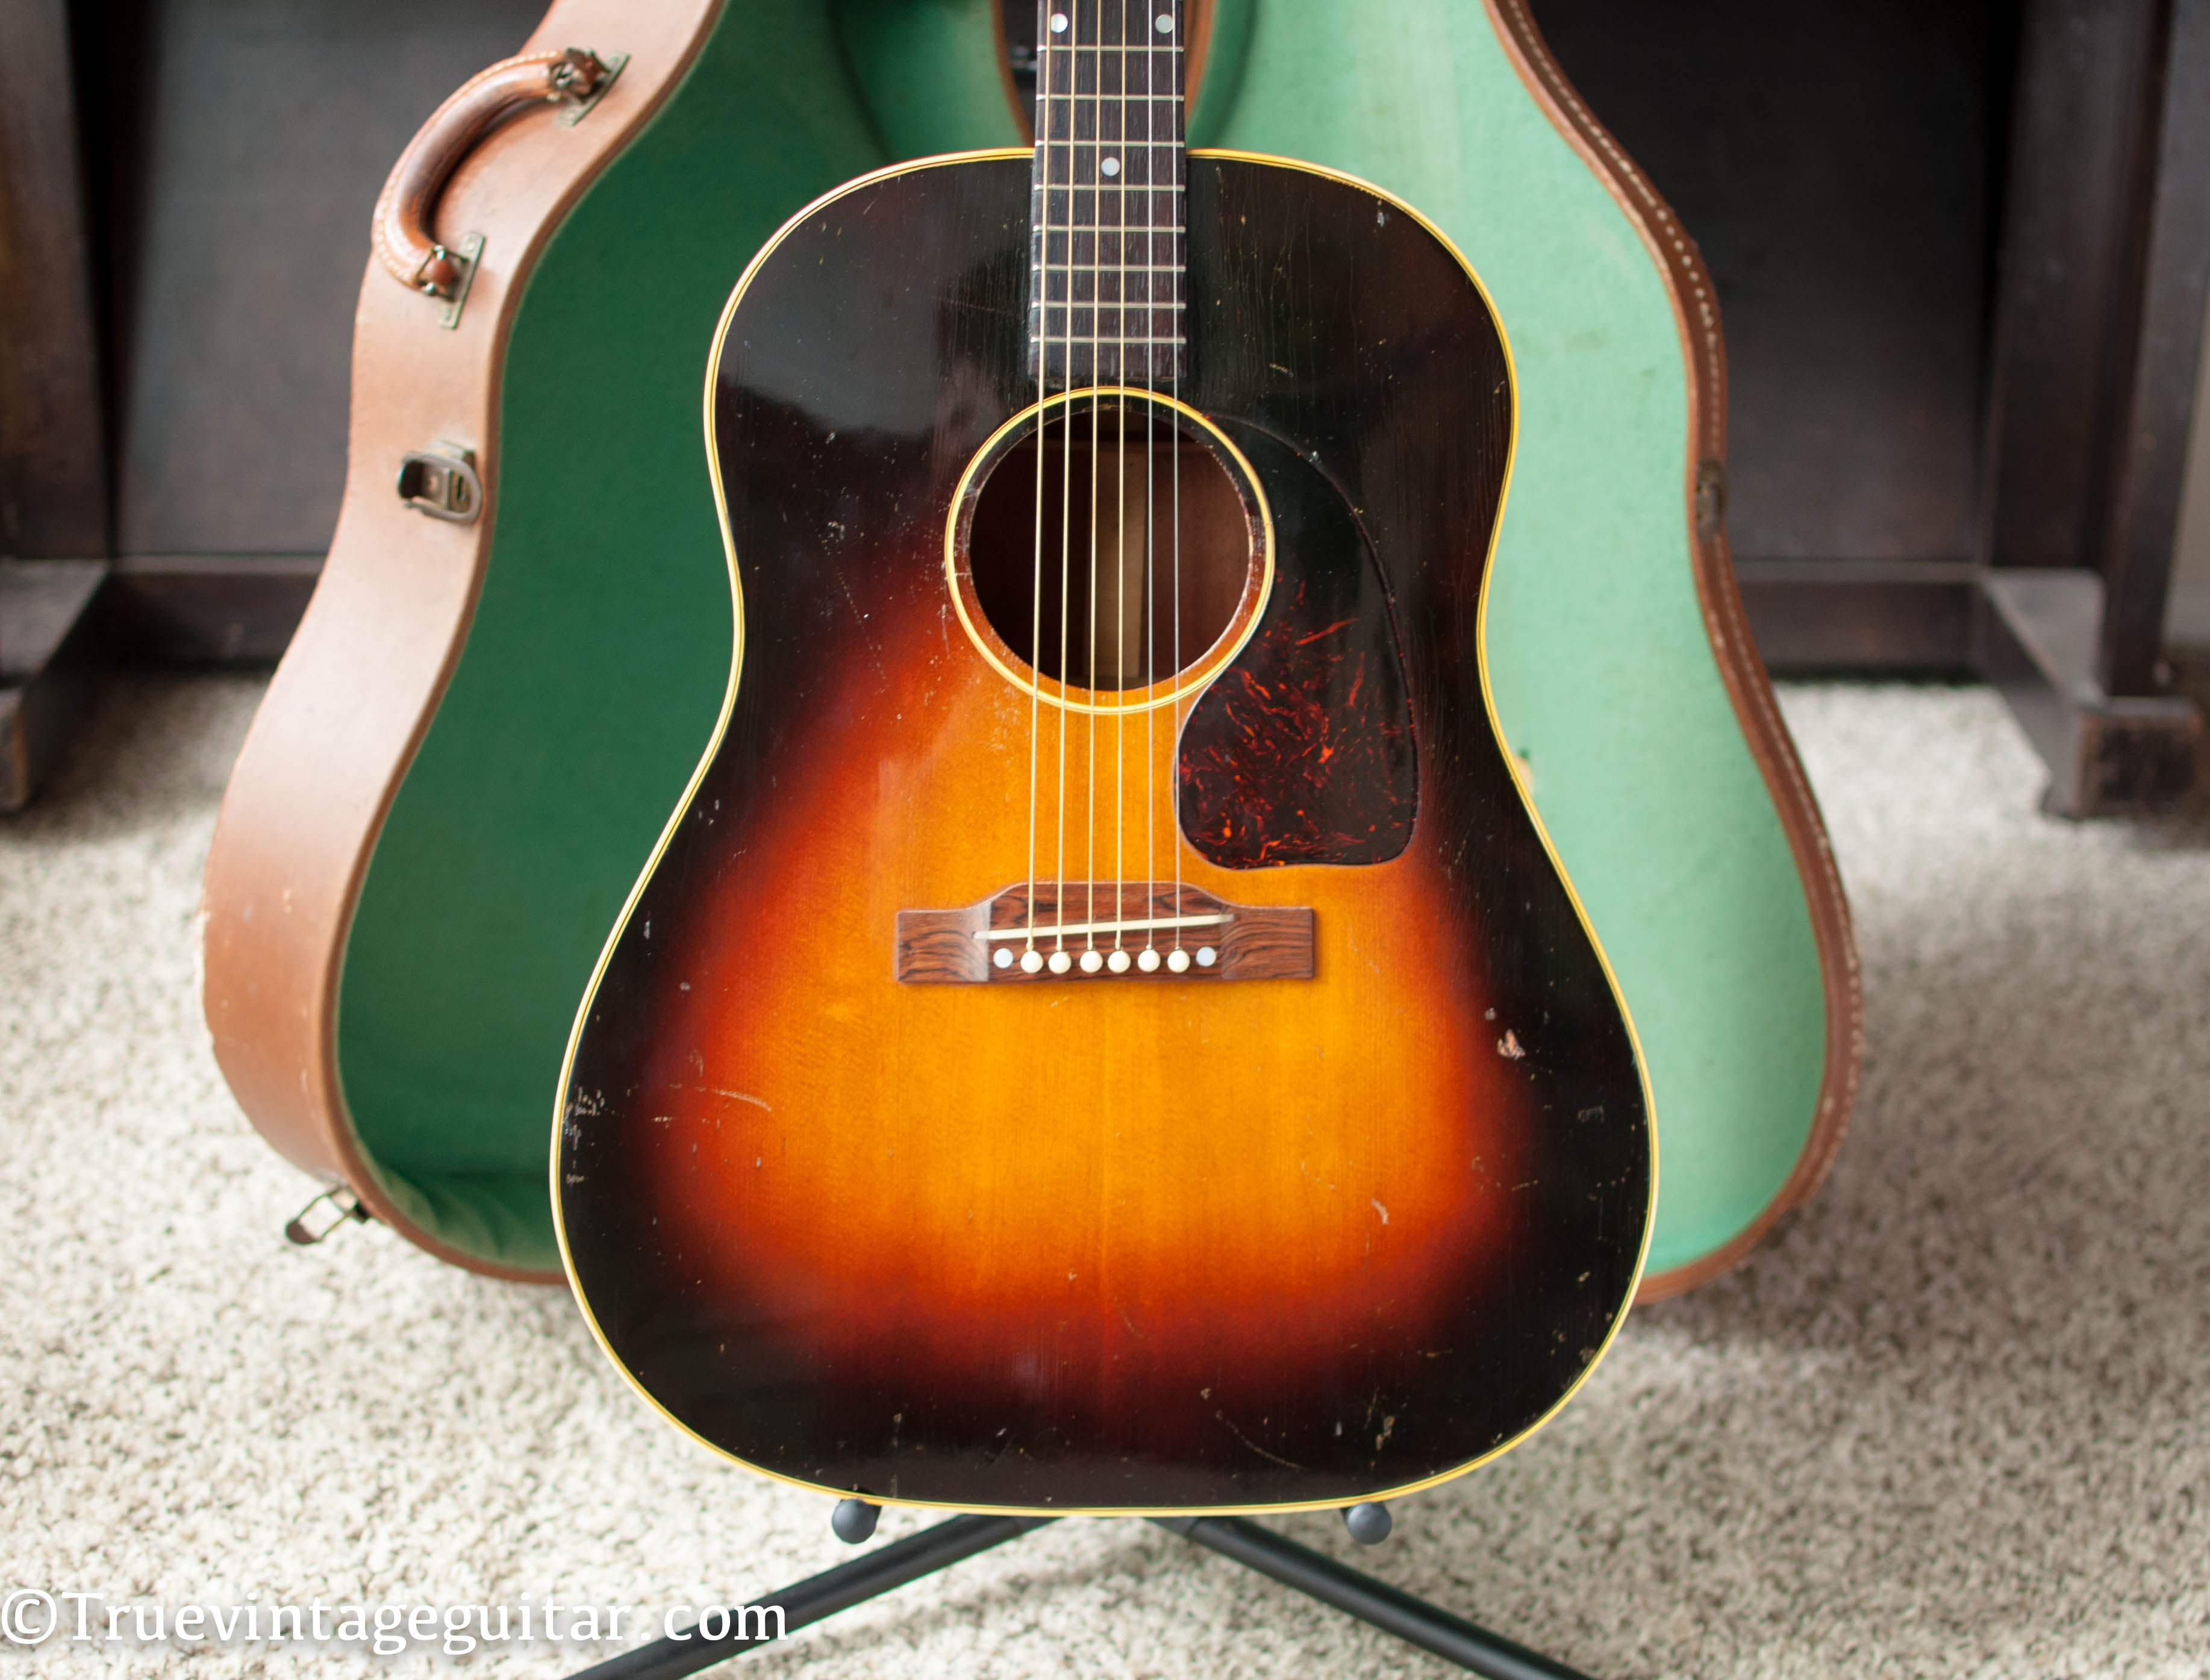 Vintage 1953 Gibson J-45 acoustic guitar